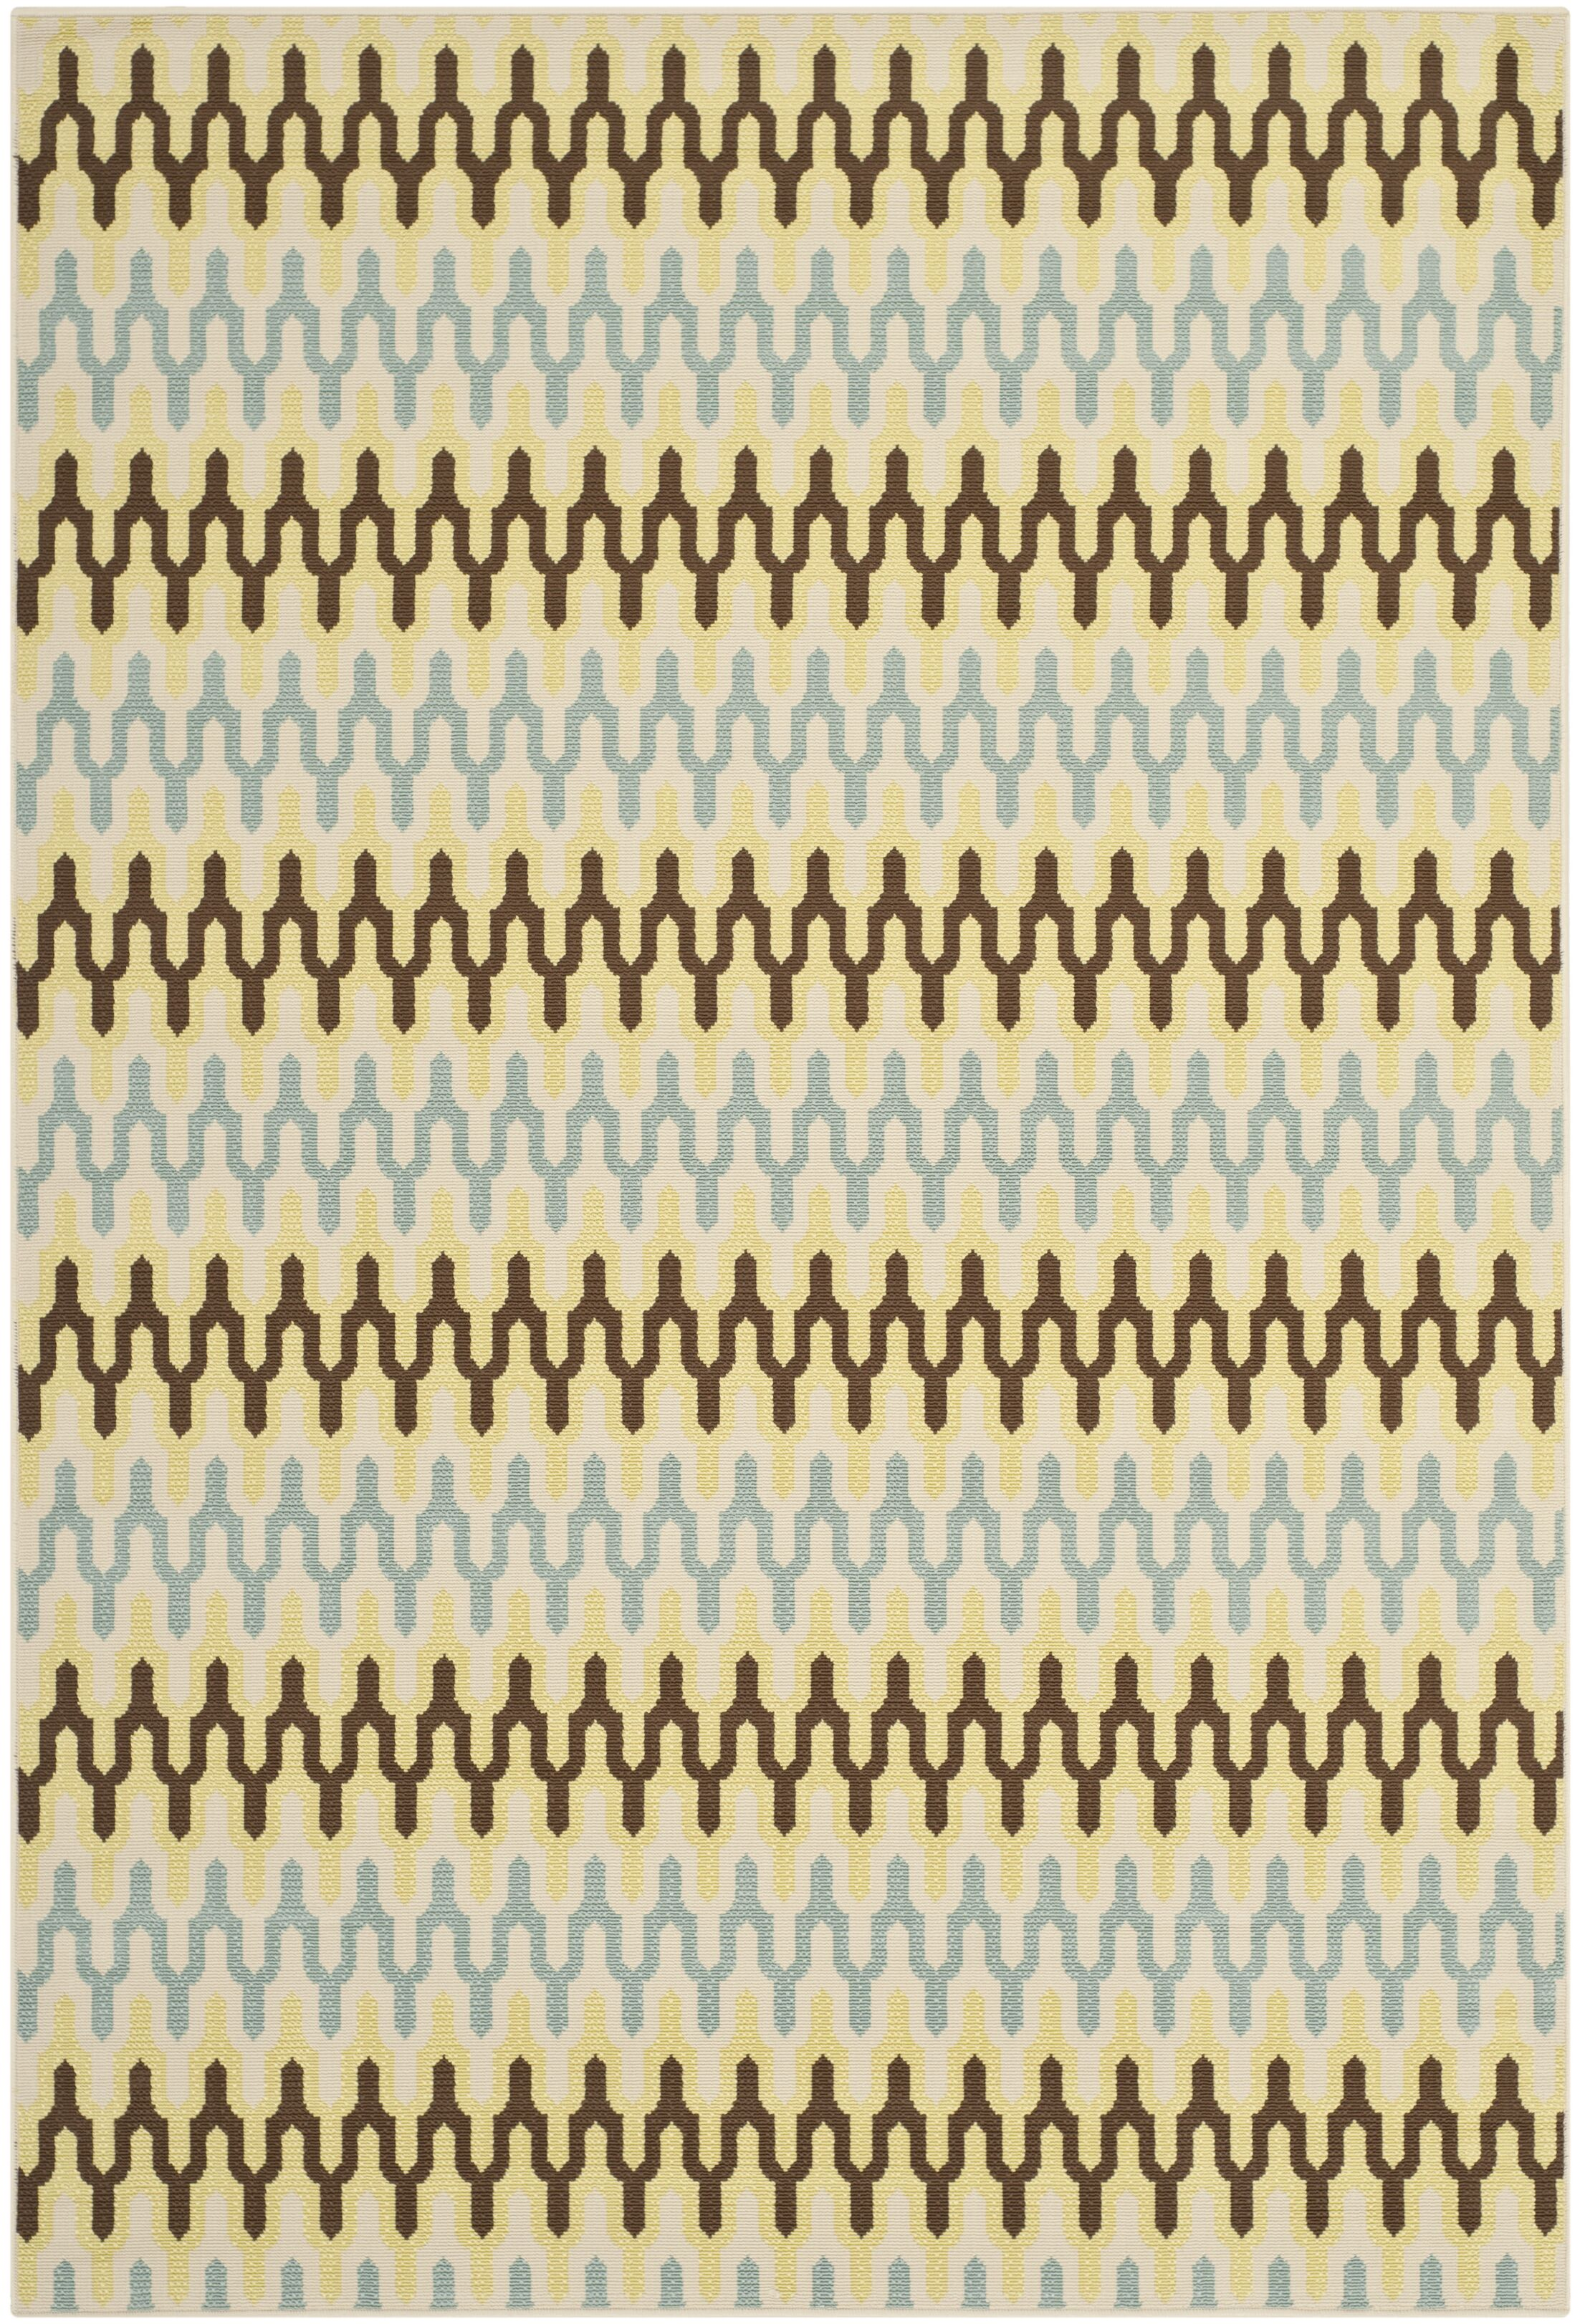 Kelston Ivory Outdoor Area Rug Rug Size: Rectangle 8' x 11'